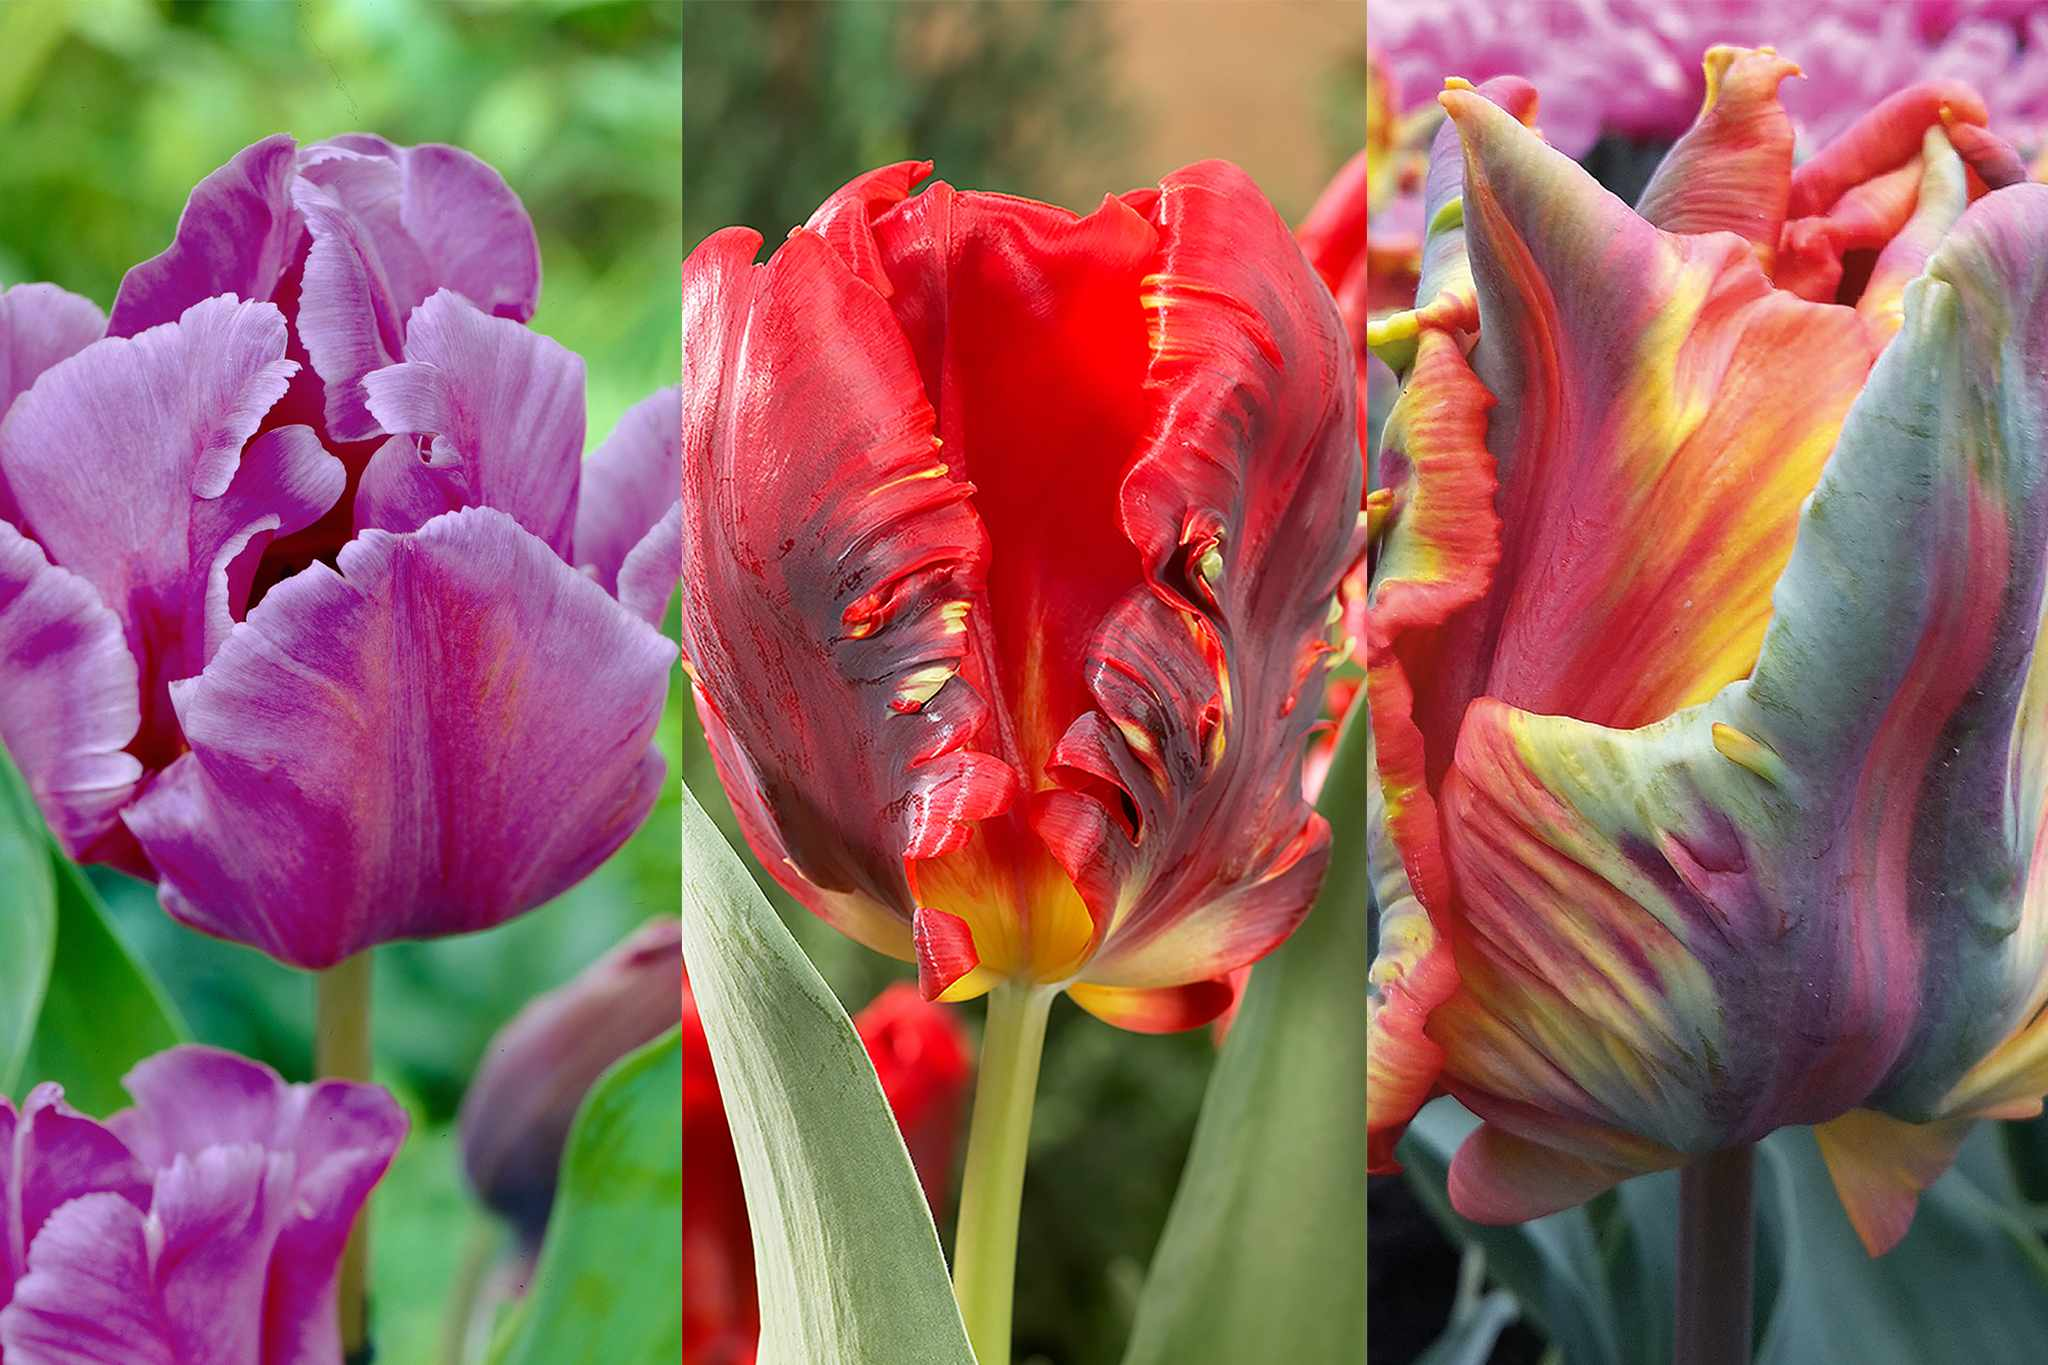 hayloft-parrot-tulips-collection-2048-1365